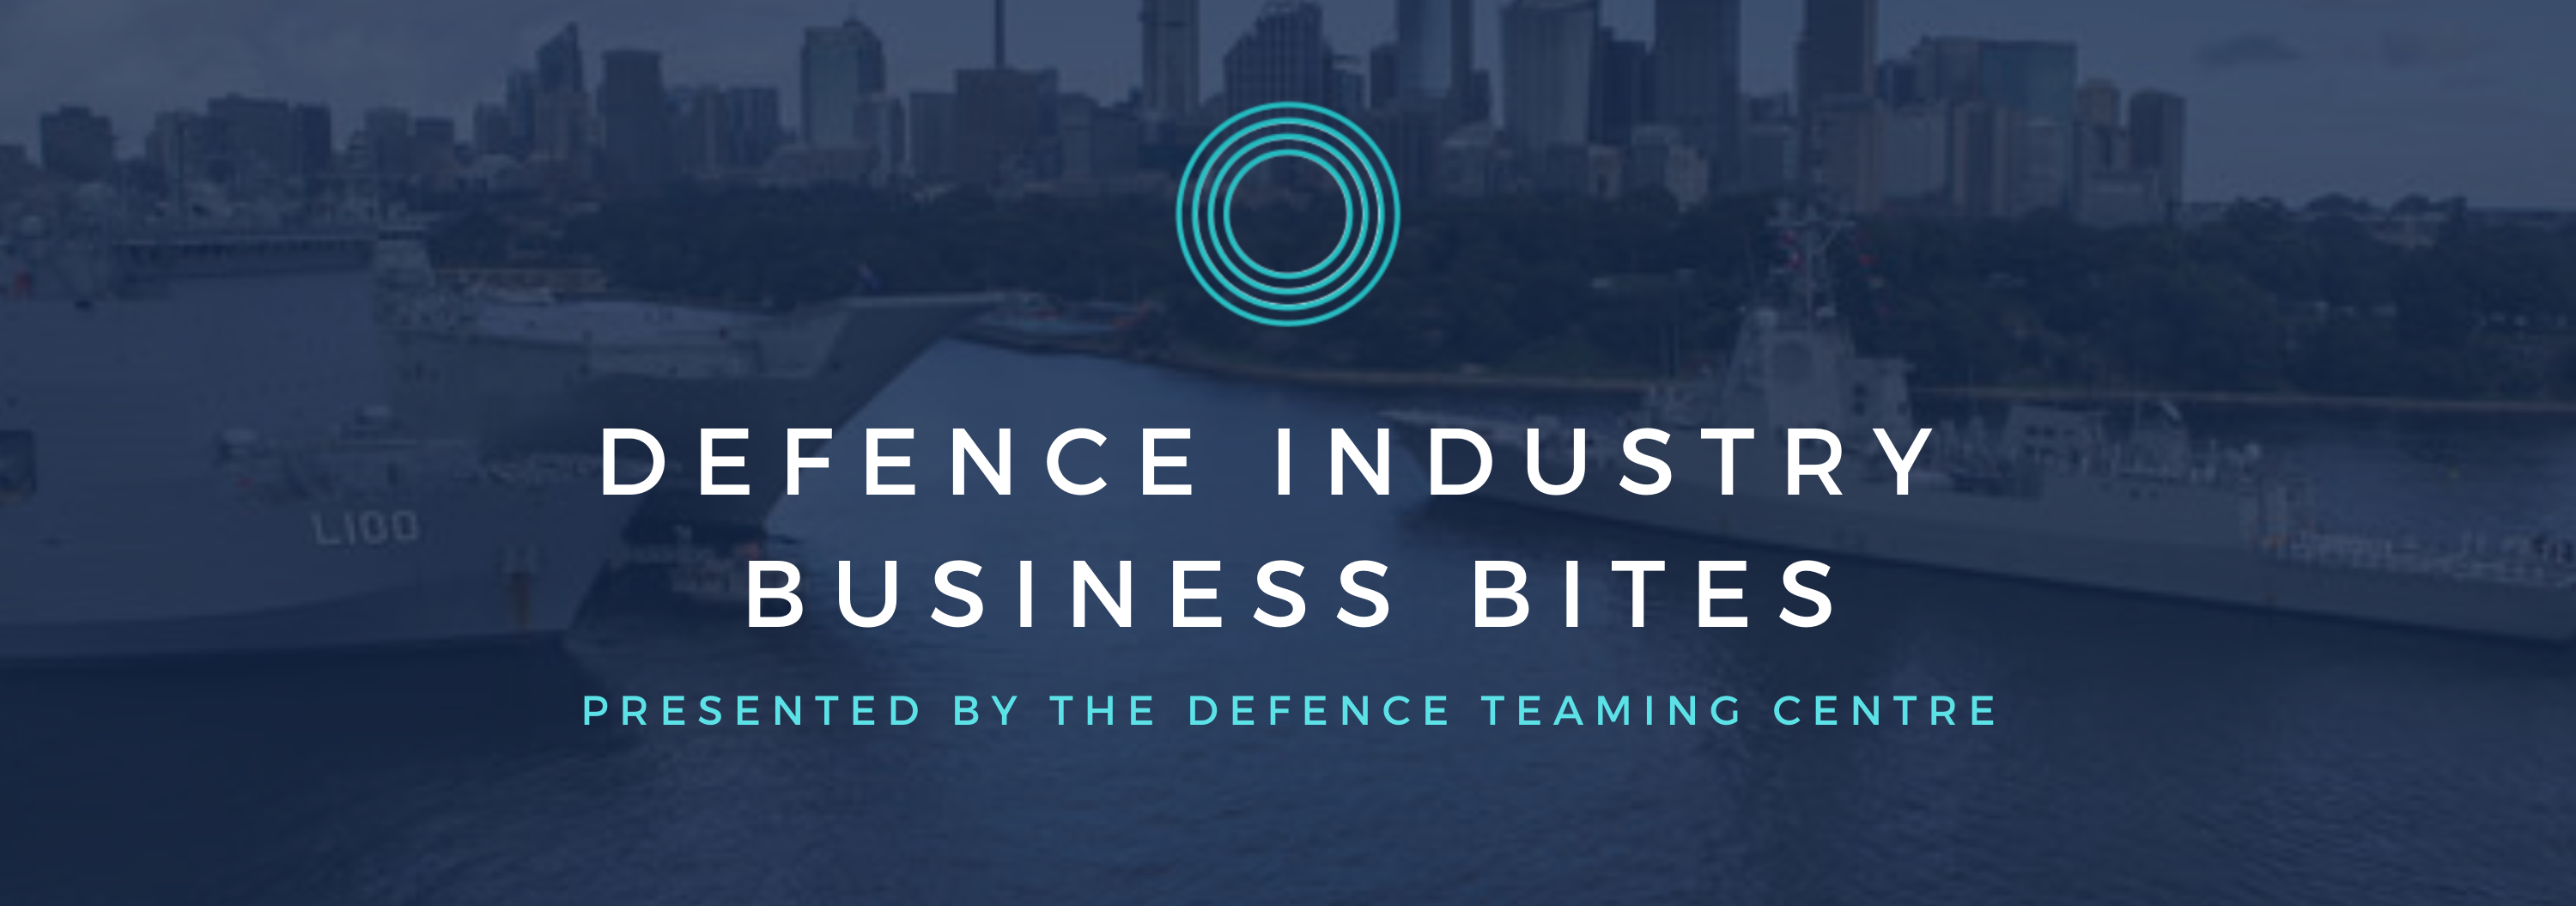 Defence Industry Business Bites – presented by Defence Teaming Centre